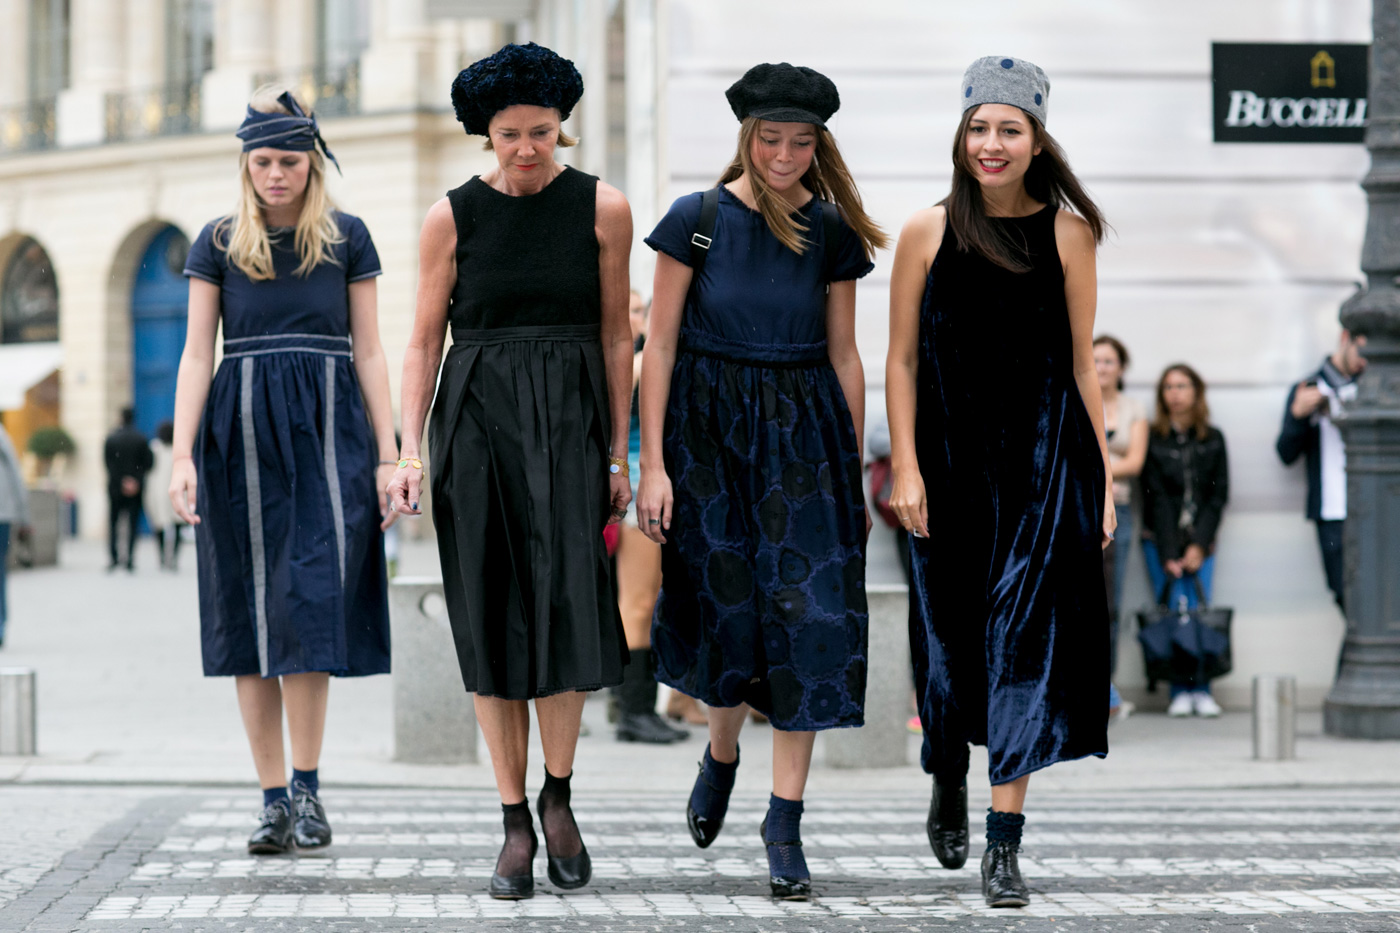 hats 15 Signs Youll Never End Up on a Street Style Blog